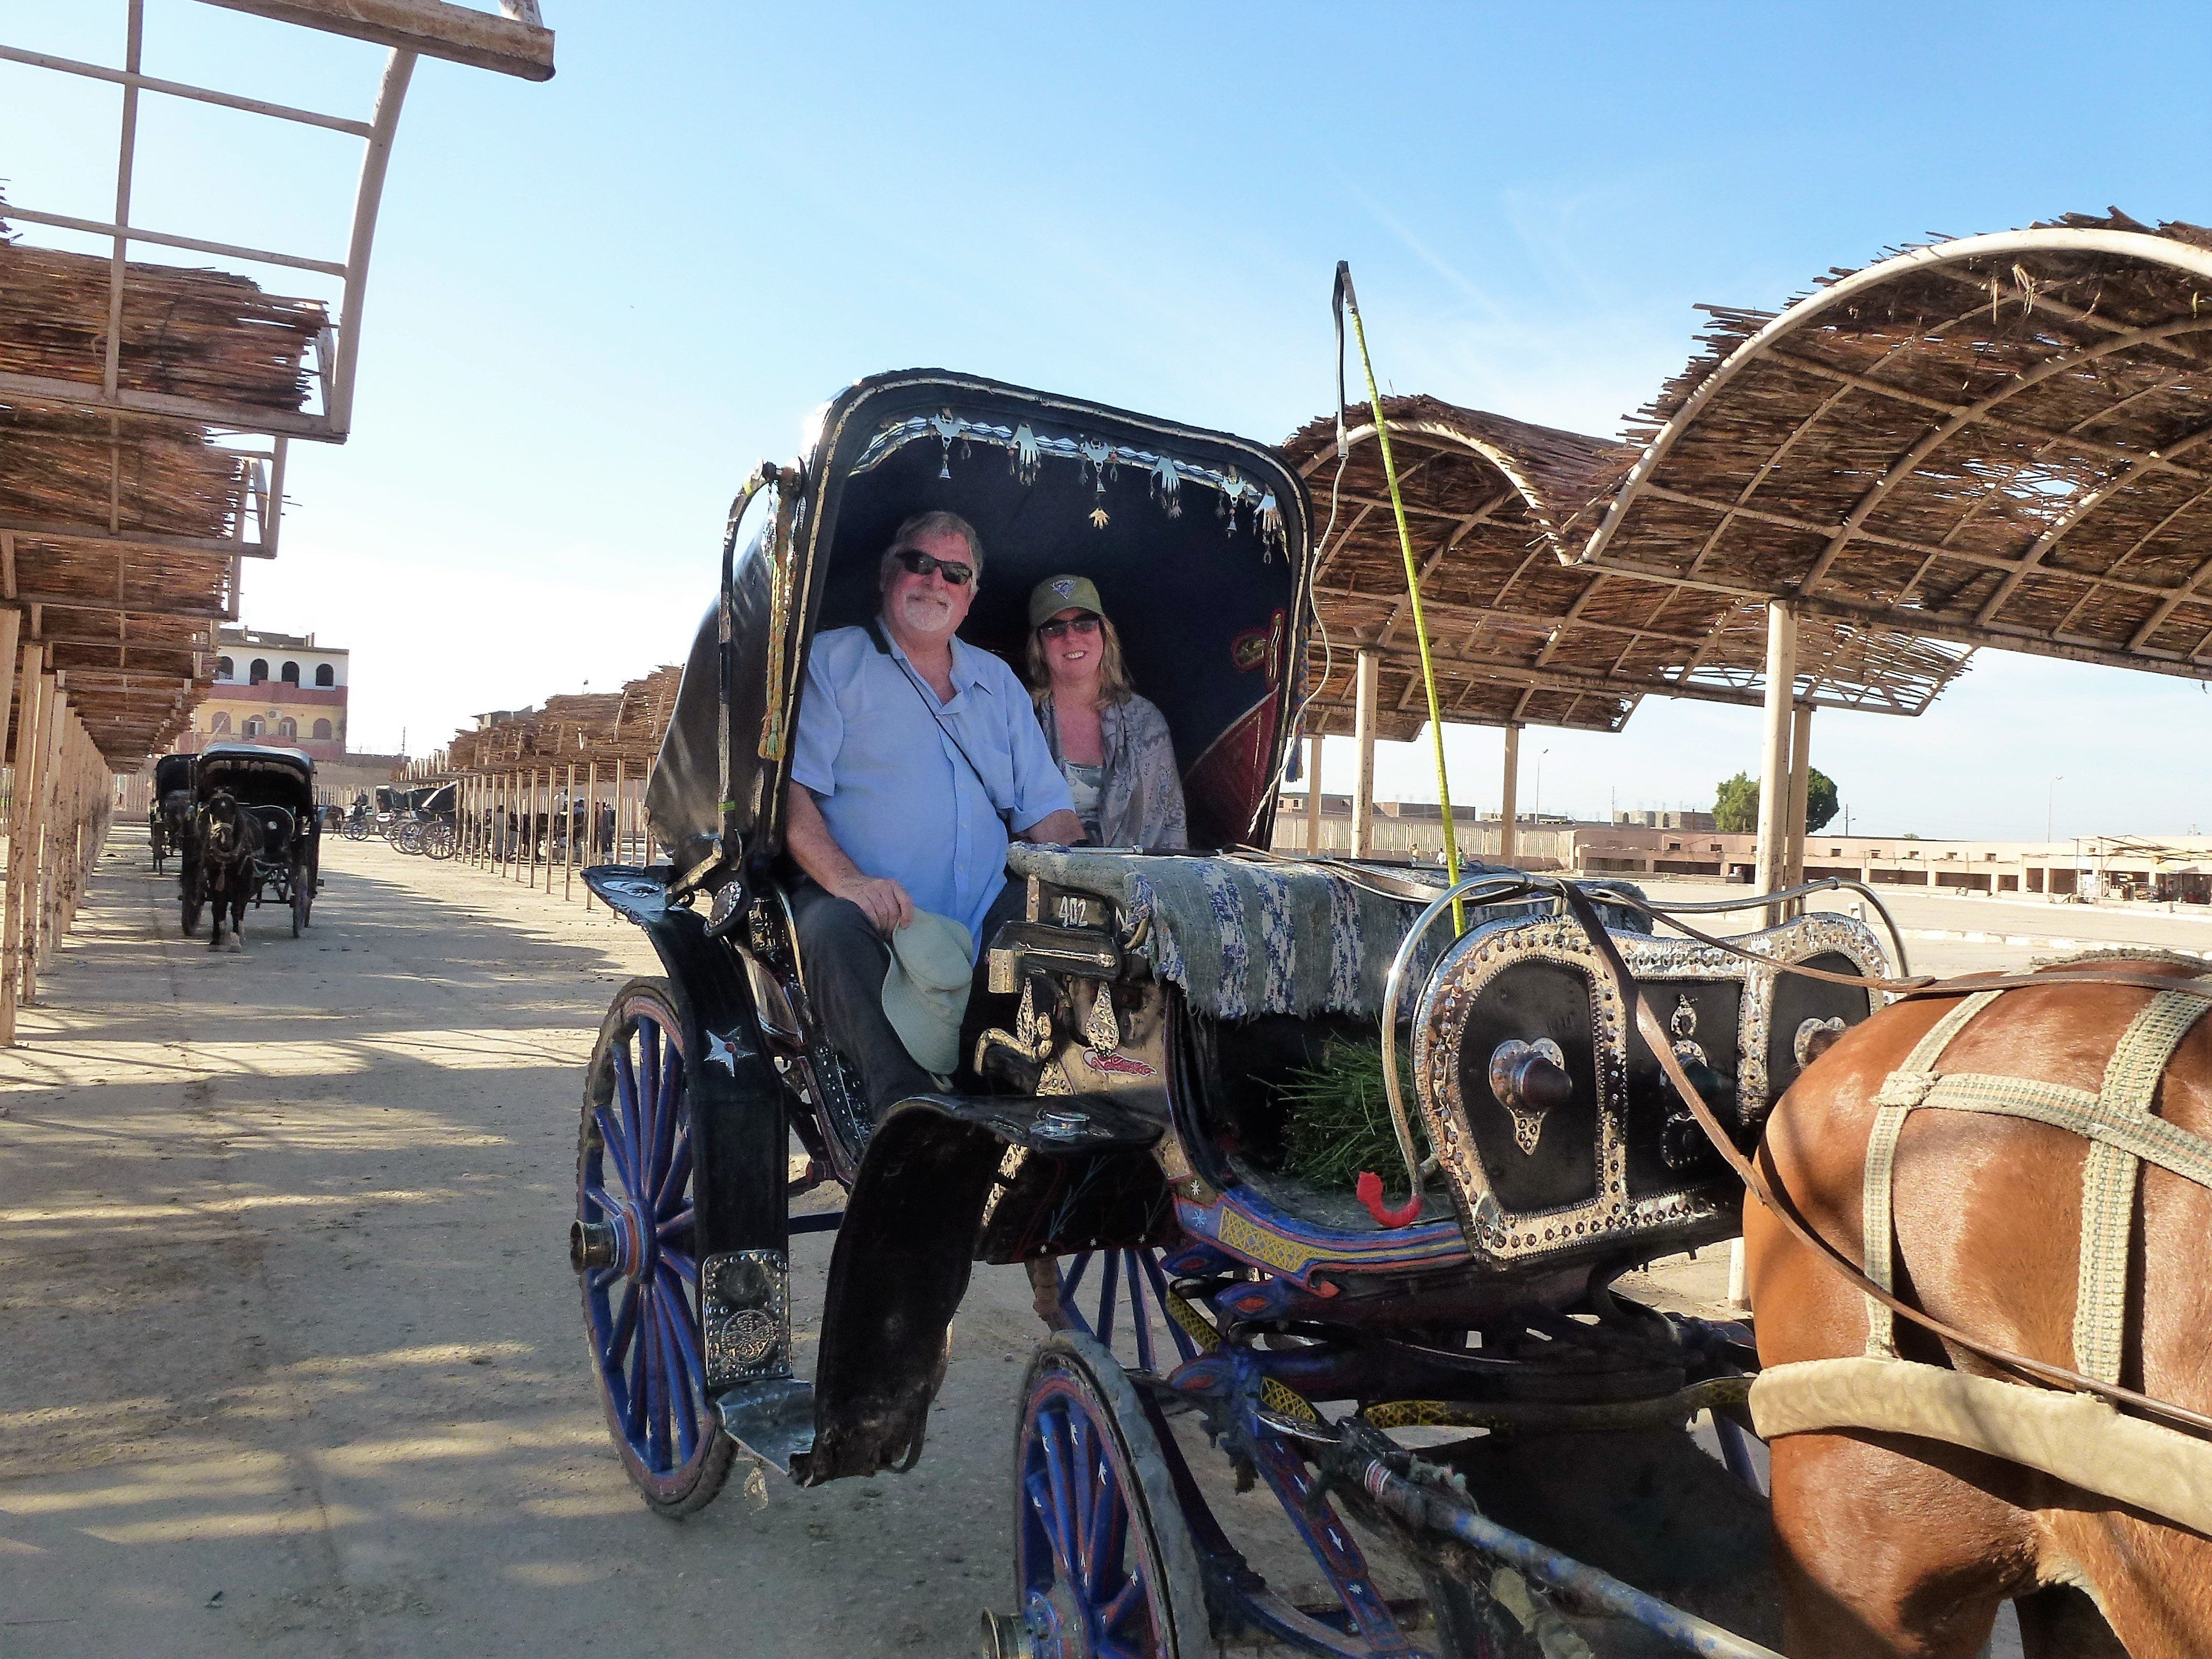 Tom Patterson and Steffanie Strathdee exploreLuxor, Egypt, in November 2015. This photo was taken earlier onthe d